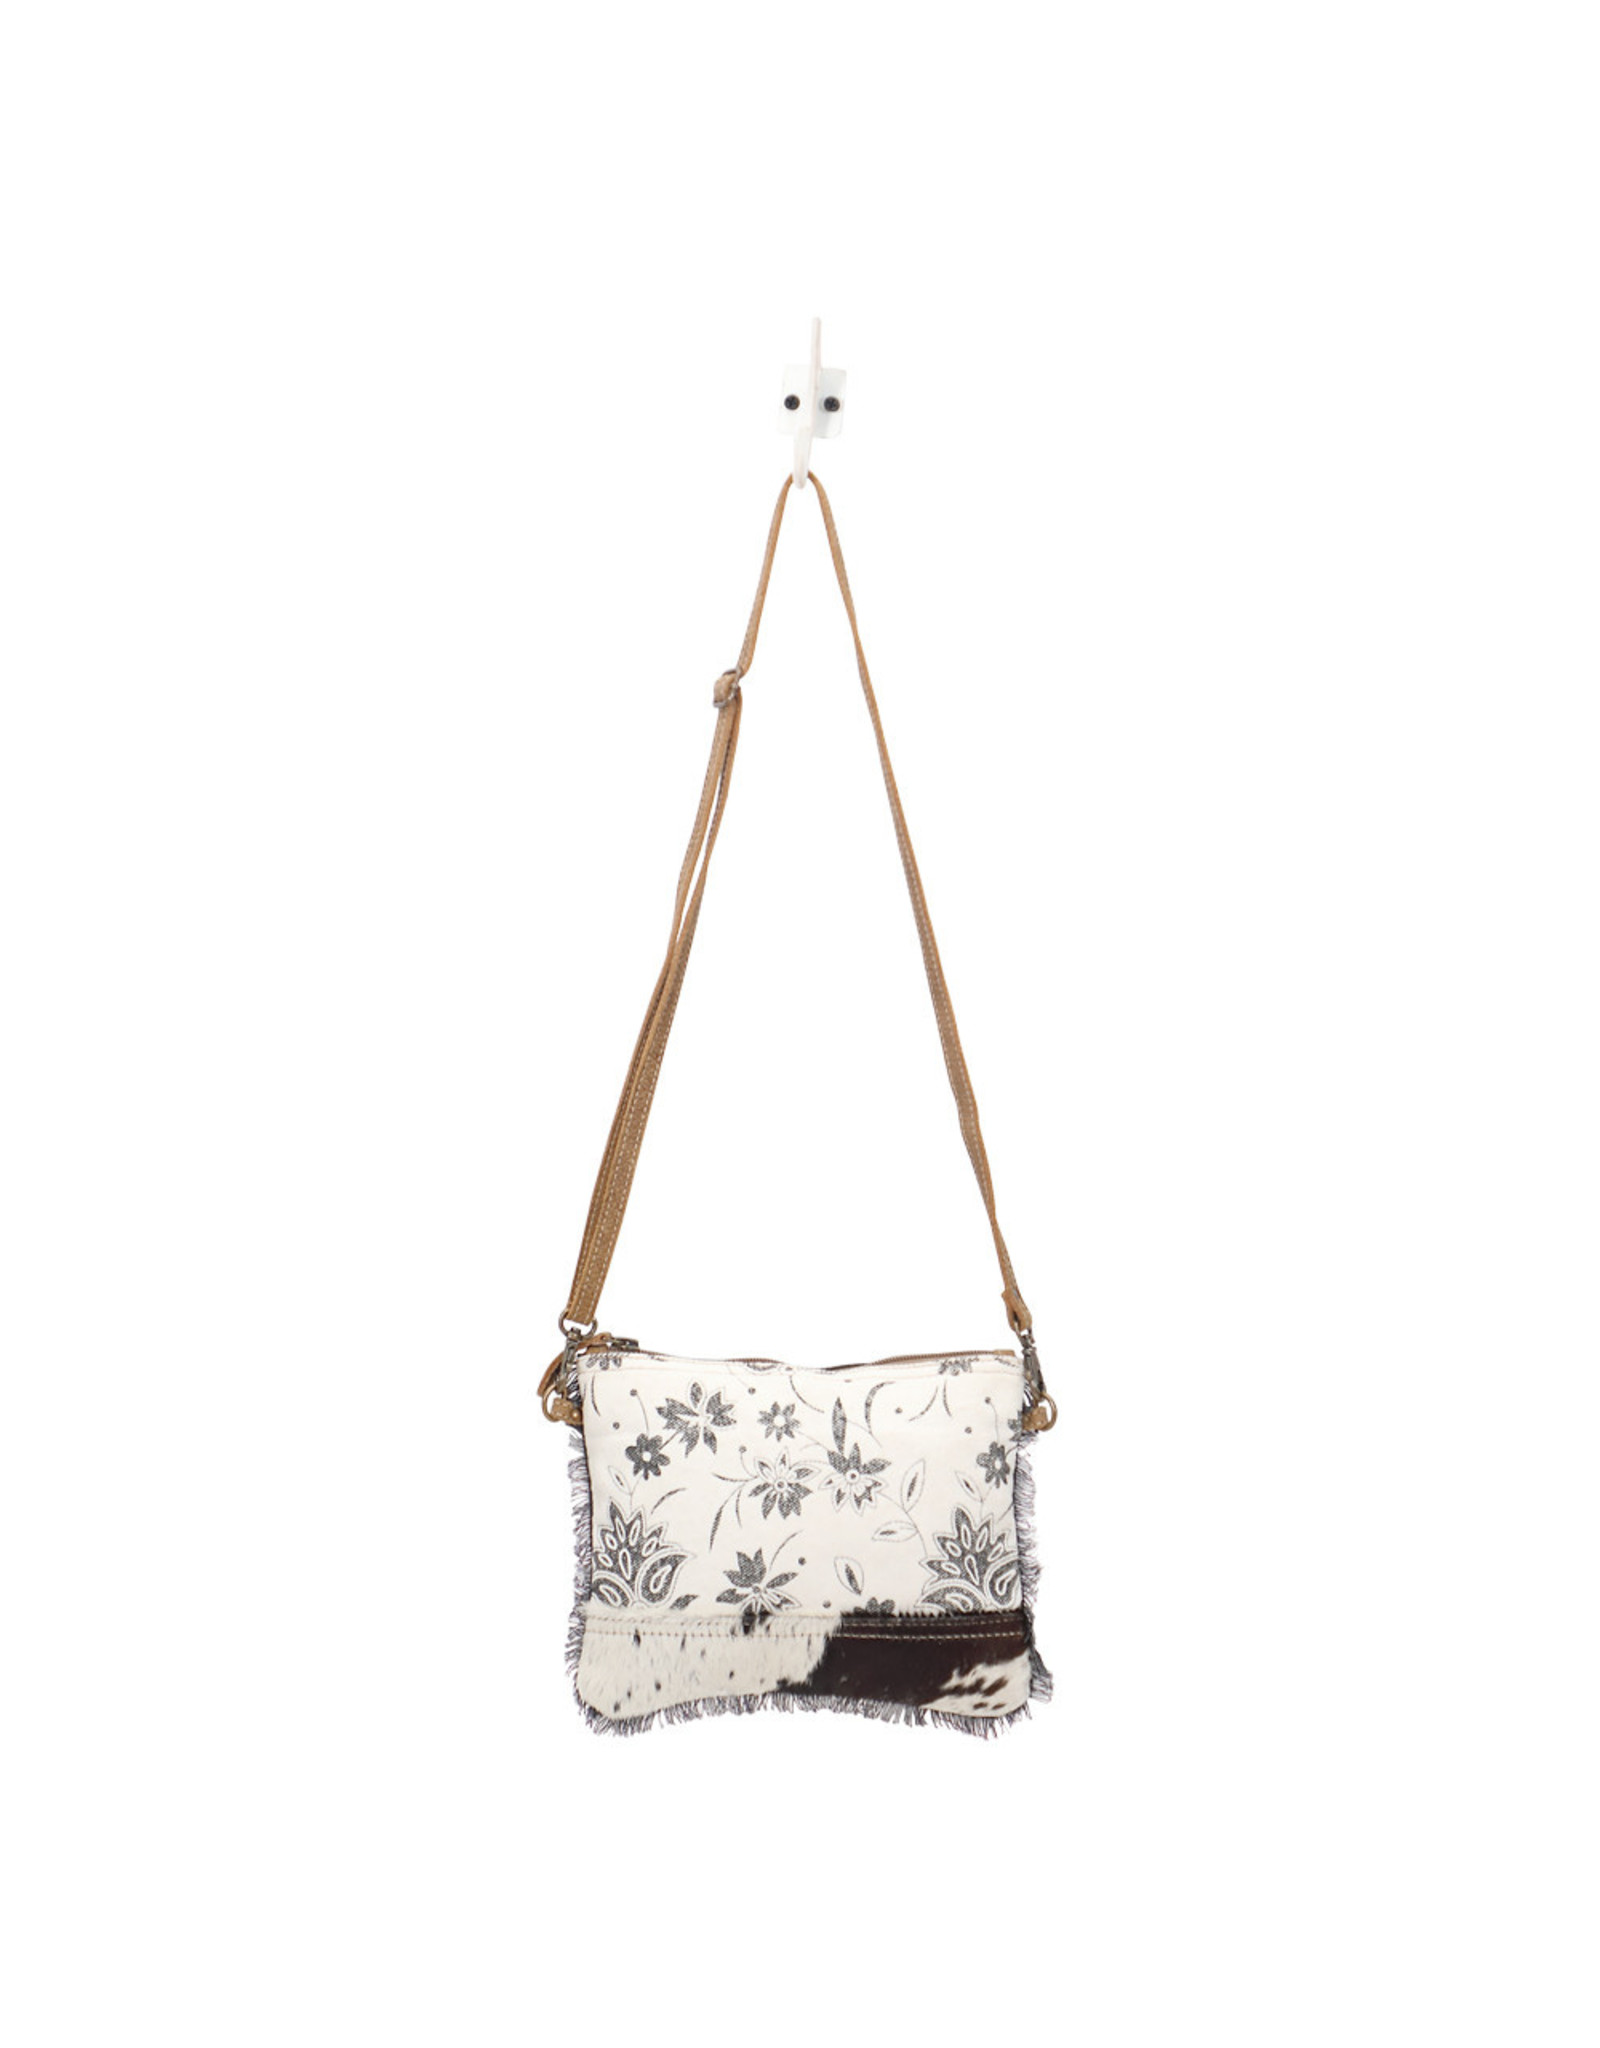 S 1512 Hry Small Crossbody Bag Mercer gallery small patchwork embossed leather shoulder bag. myra bags s 1512 hry small crossbody bag